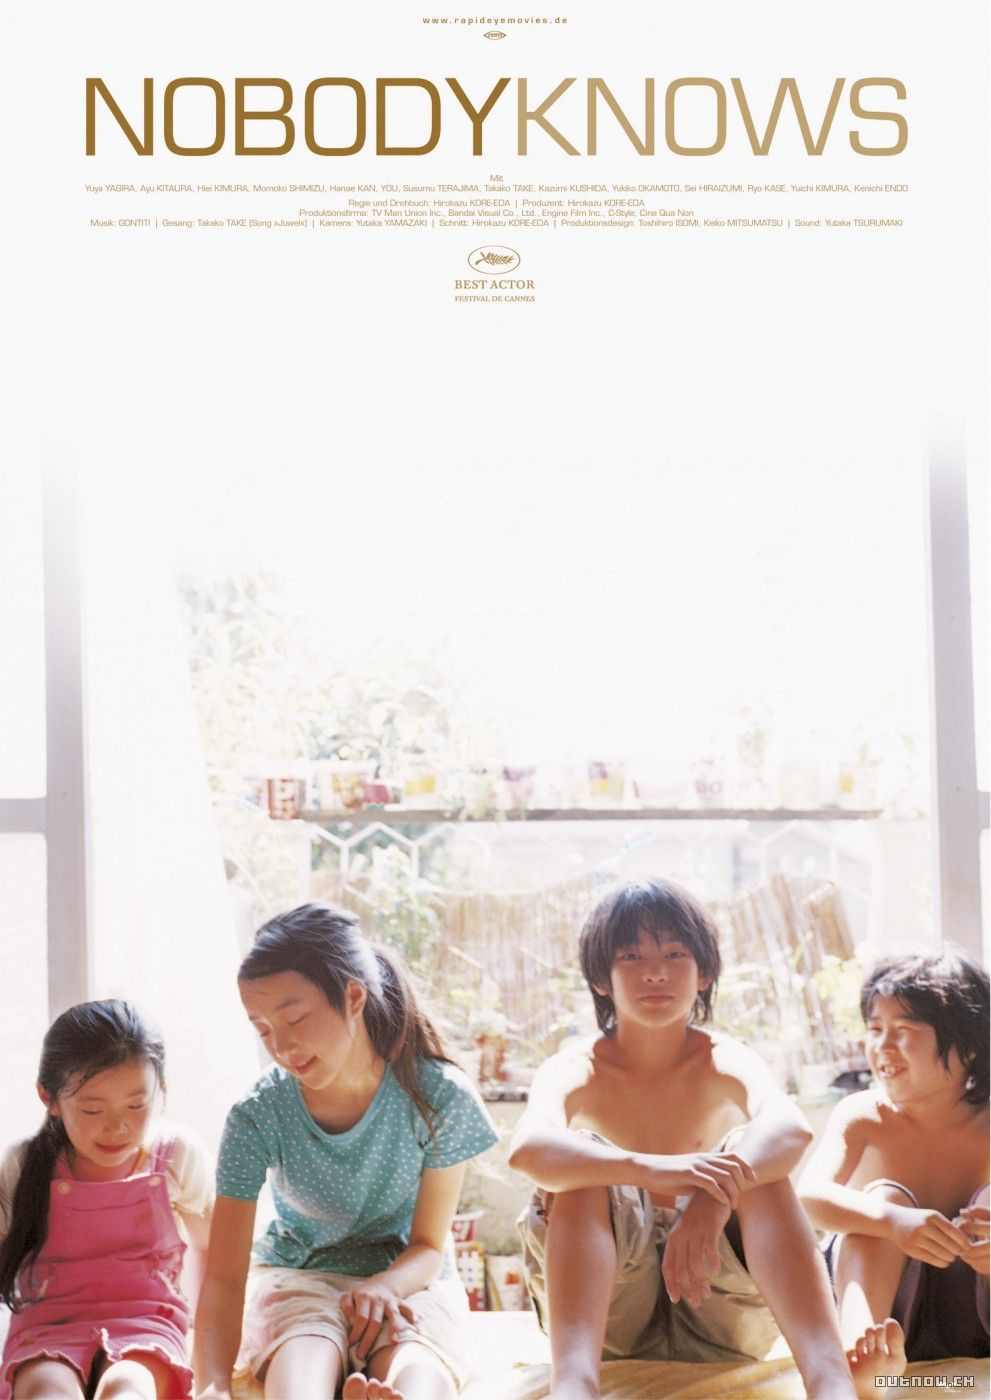 Nobody Knows 2004 Teenage Movie Best Actor Our Little Sister